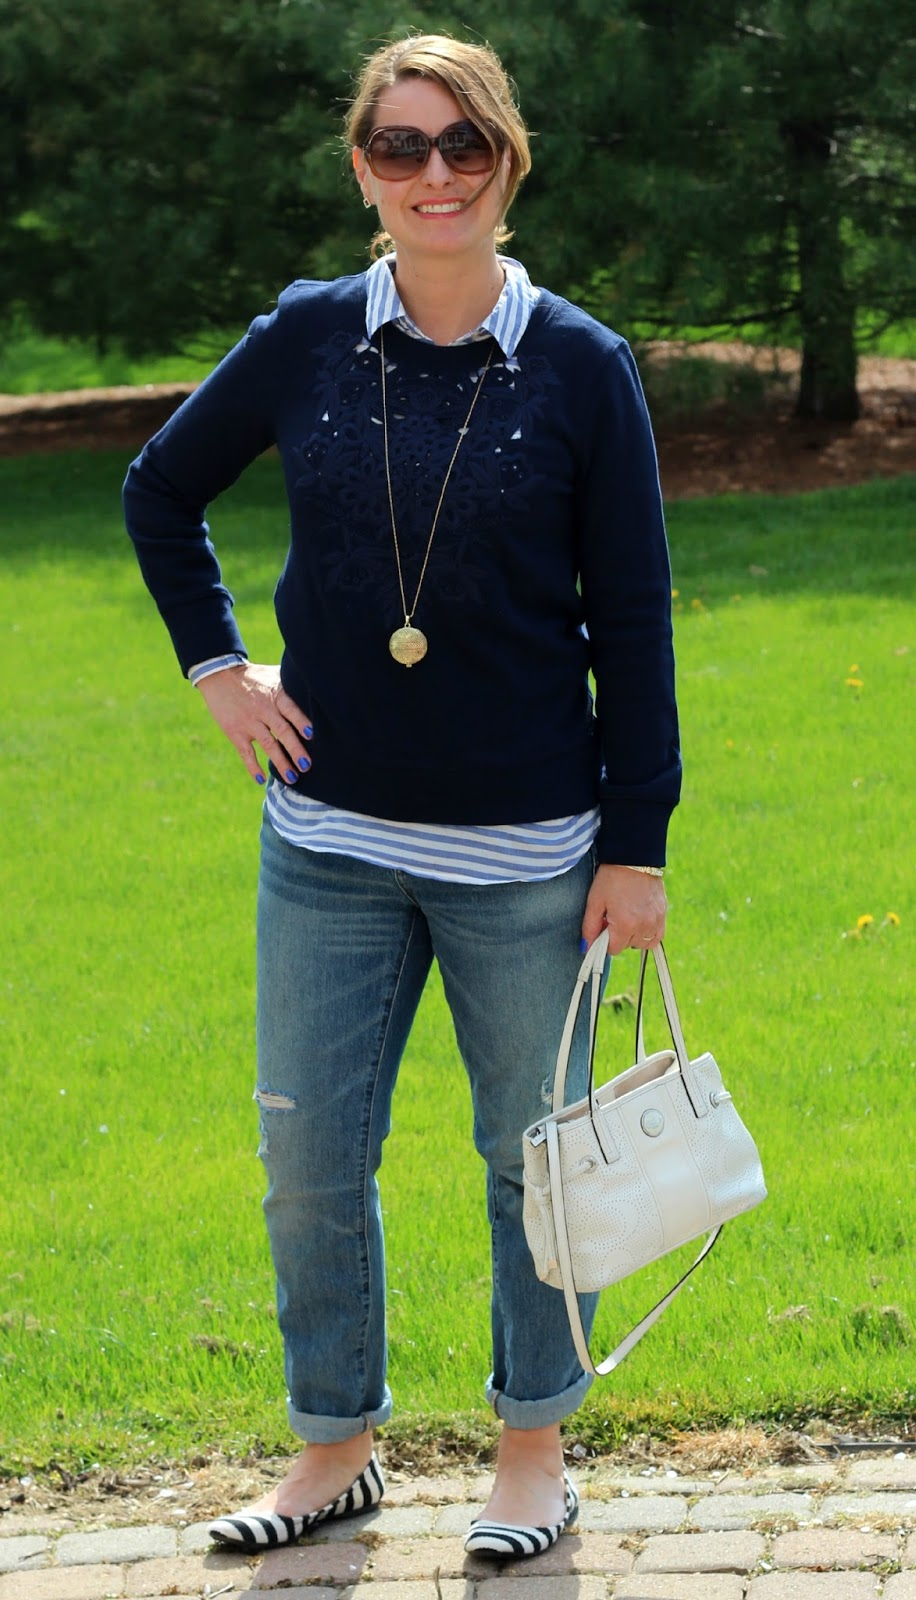 40 something fashion, mom style, spring outfit, spring style, j crew boyfriend jeans, striped popover